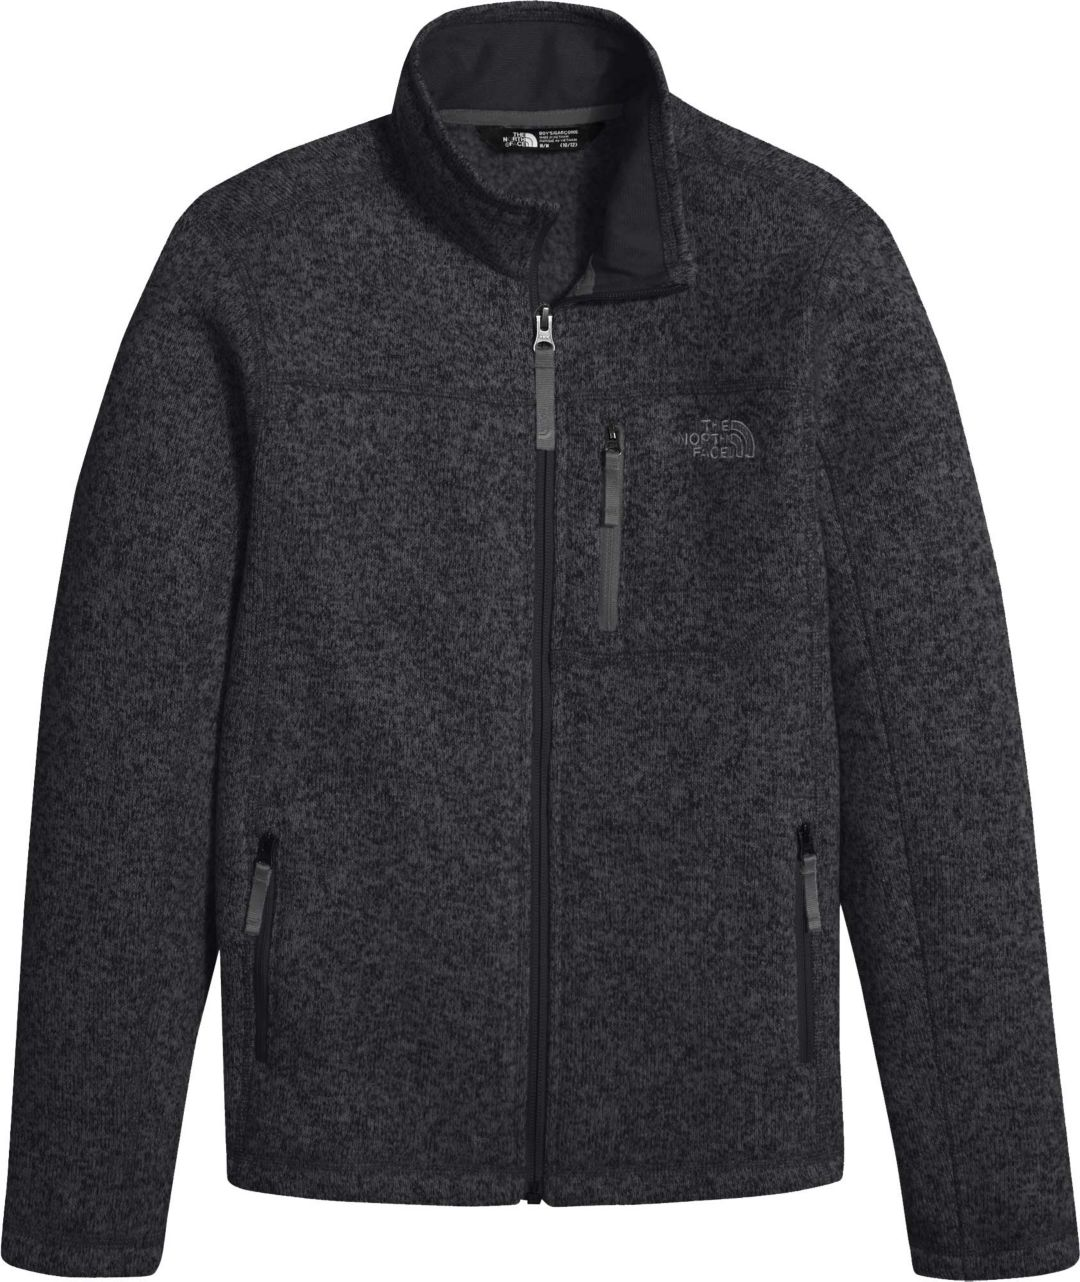 7850abd53 The North Face Boys' Gordon Lyons Full Zip Fleece Jacket - Past Season